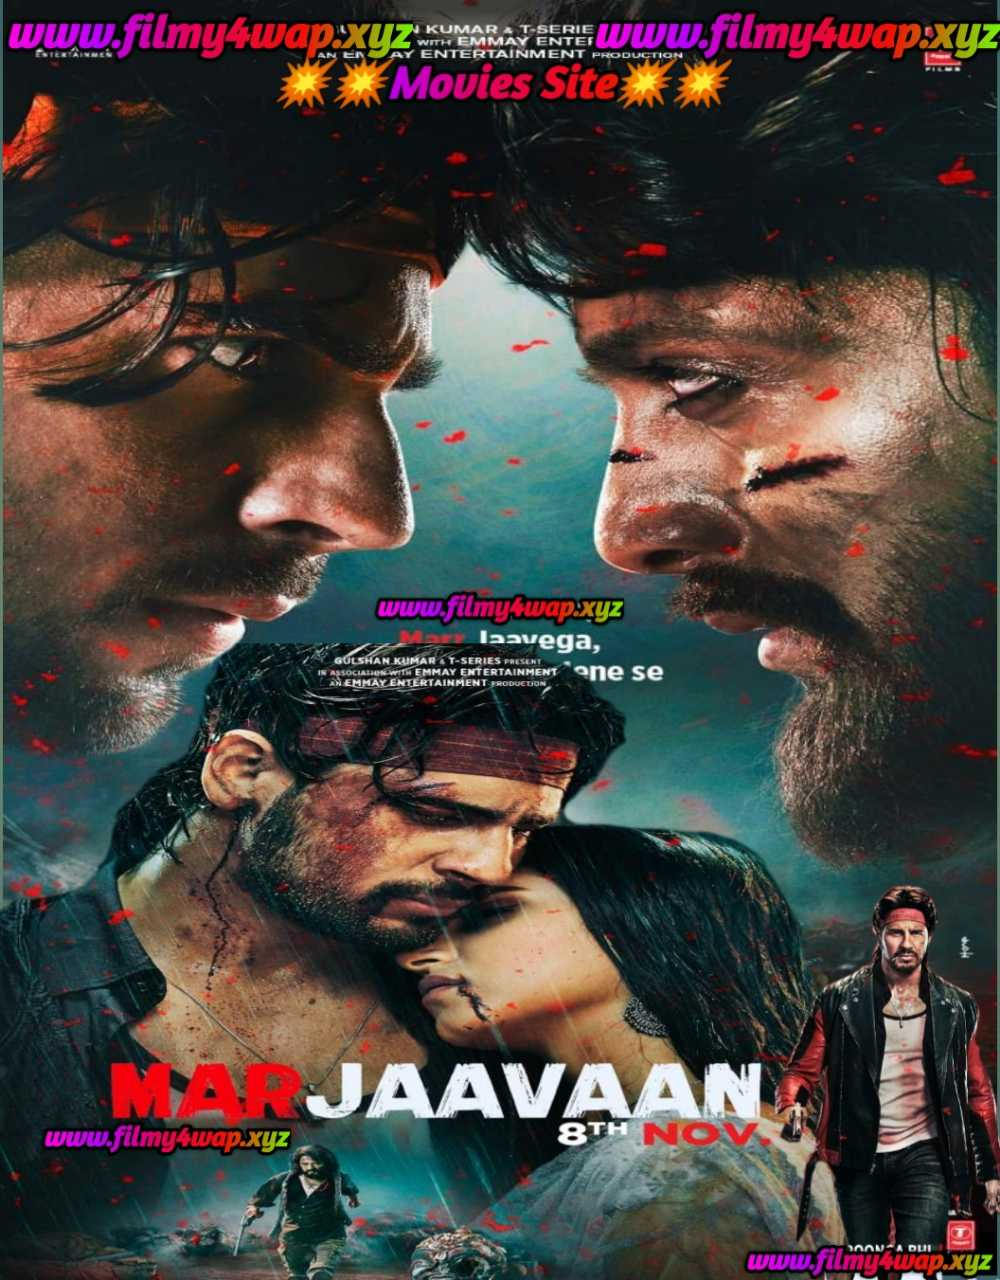 Marjaavaan (2019) New Bollywood Full Movie 400mb 700mb And 1.3GB Download